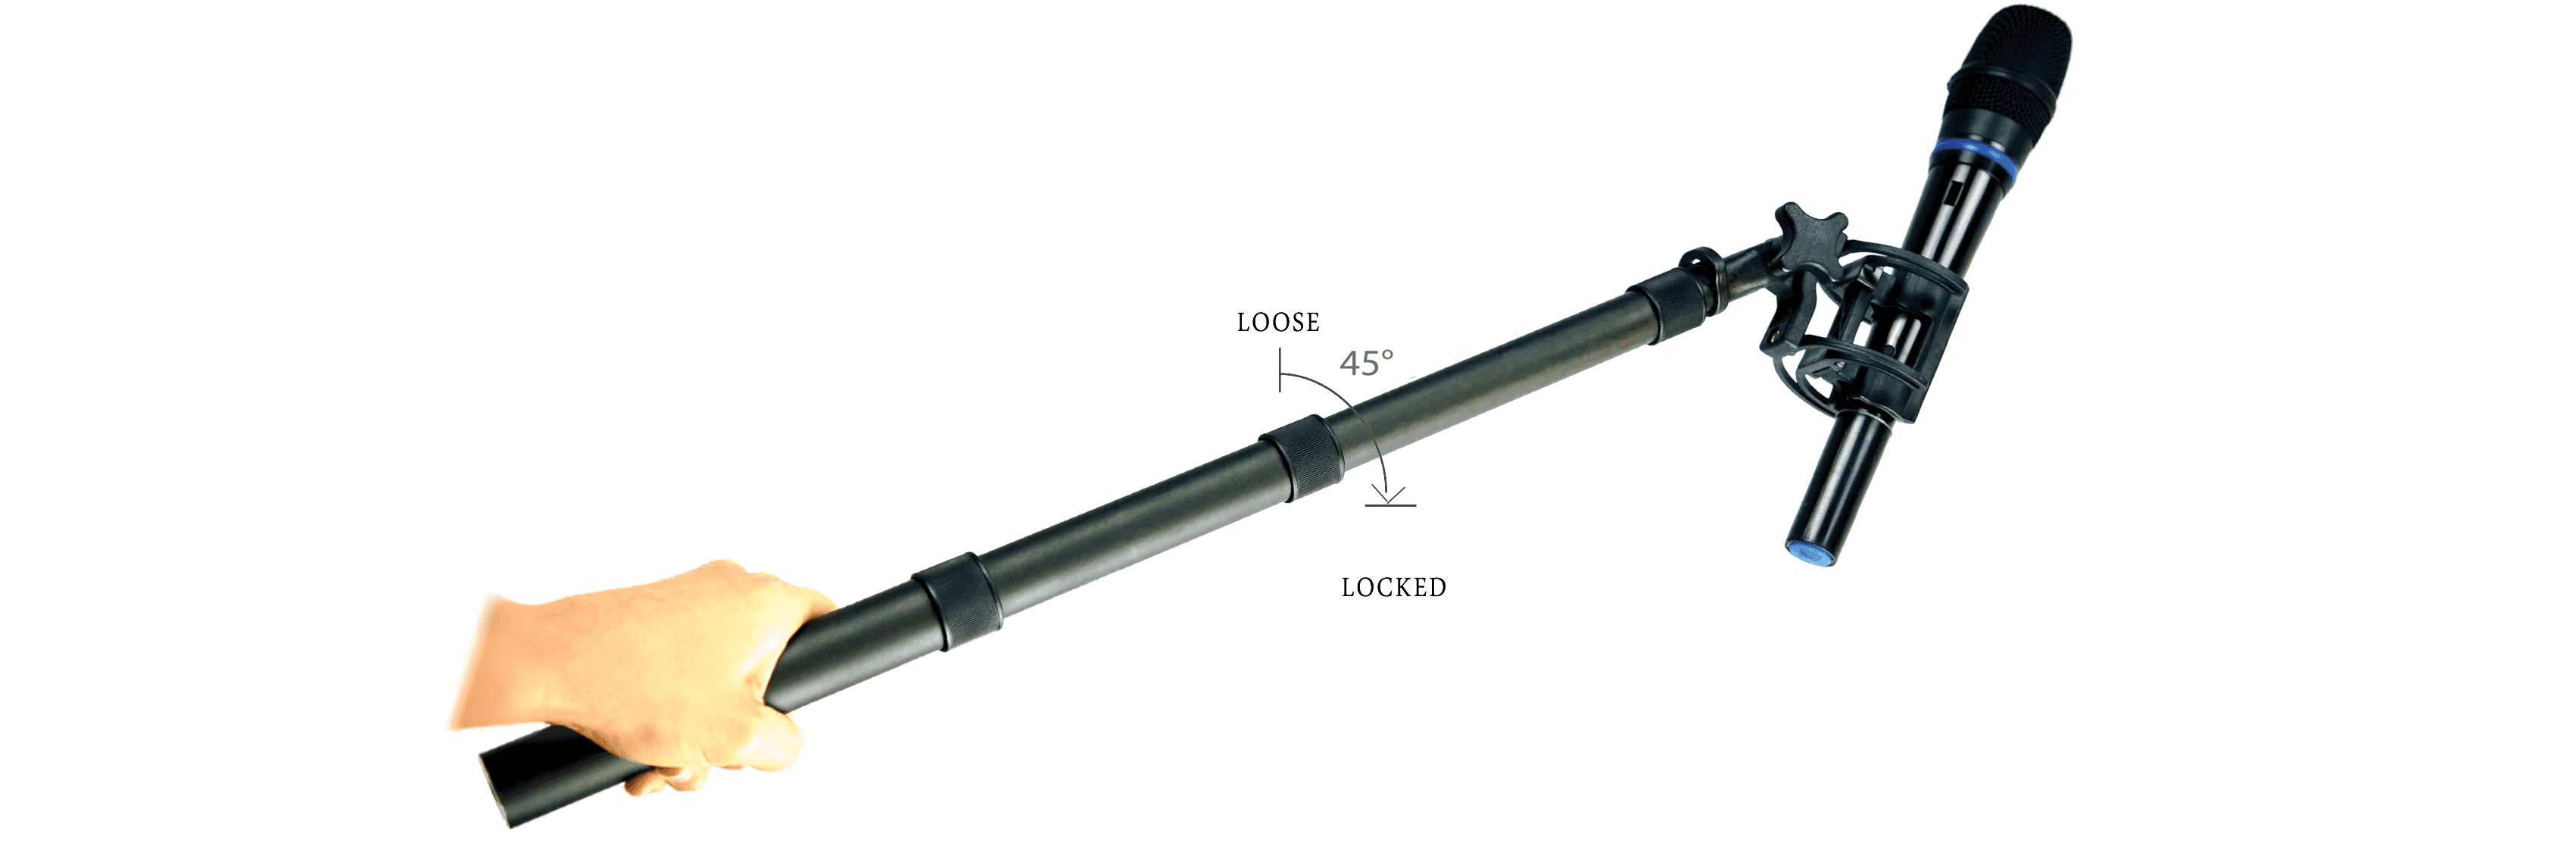 VDB HAND-QT Boompole locking system overview